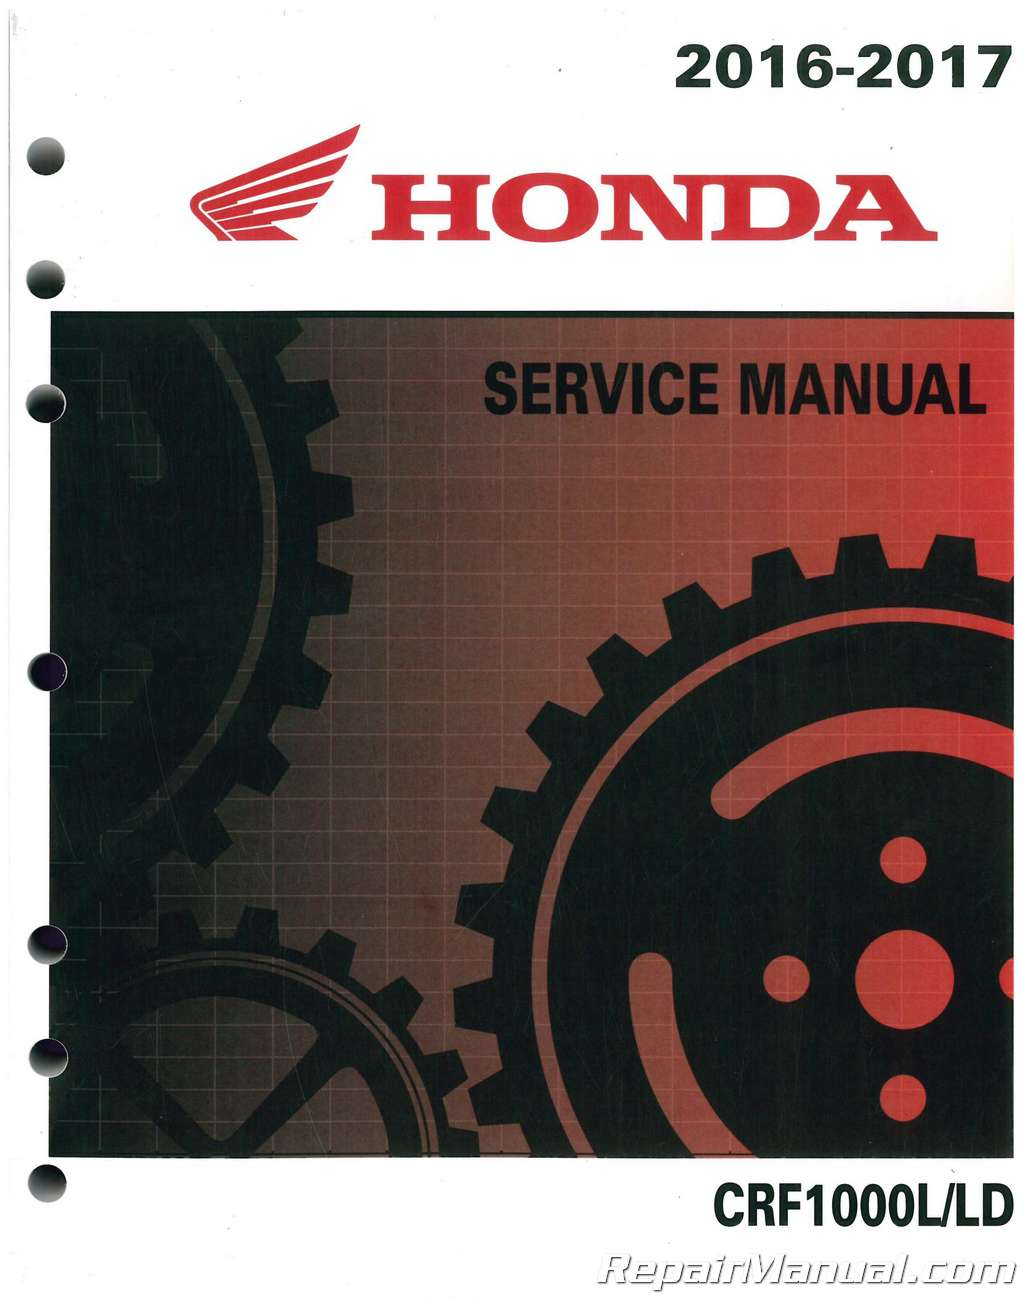 Honda goldwing 1800 2016 owners manual